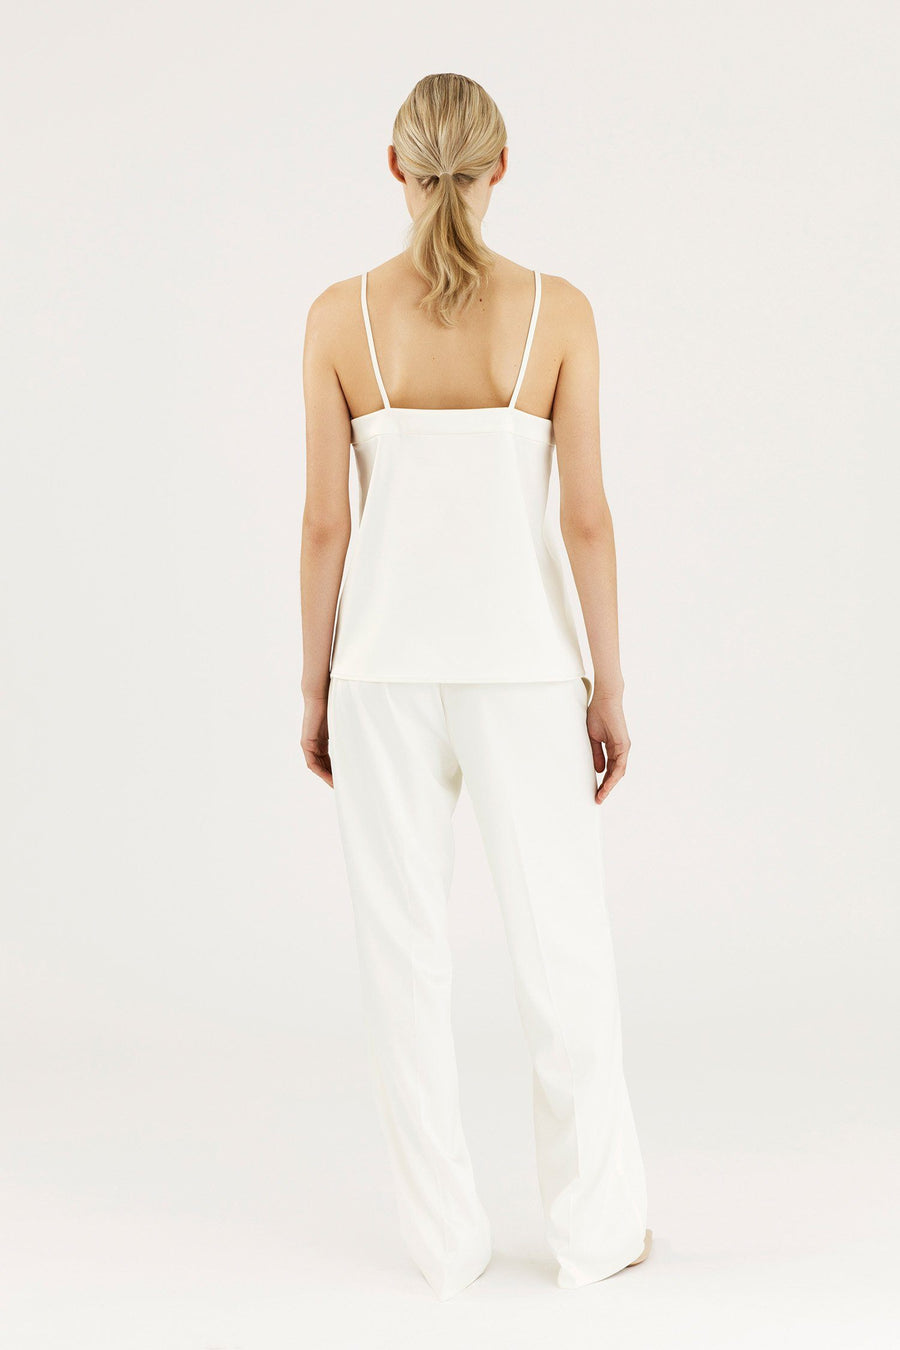 BAYLIE TOP - OFF WHITE Top Stylein